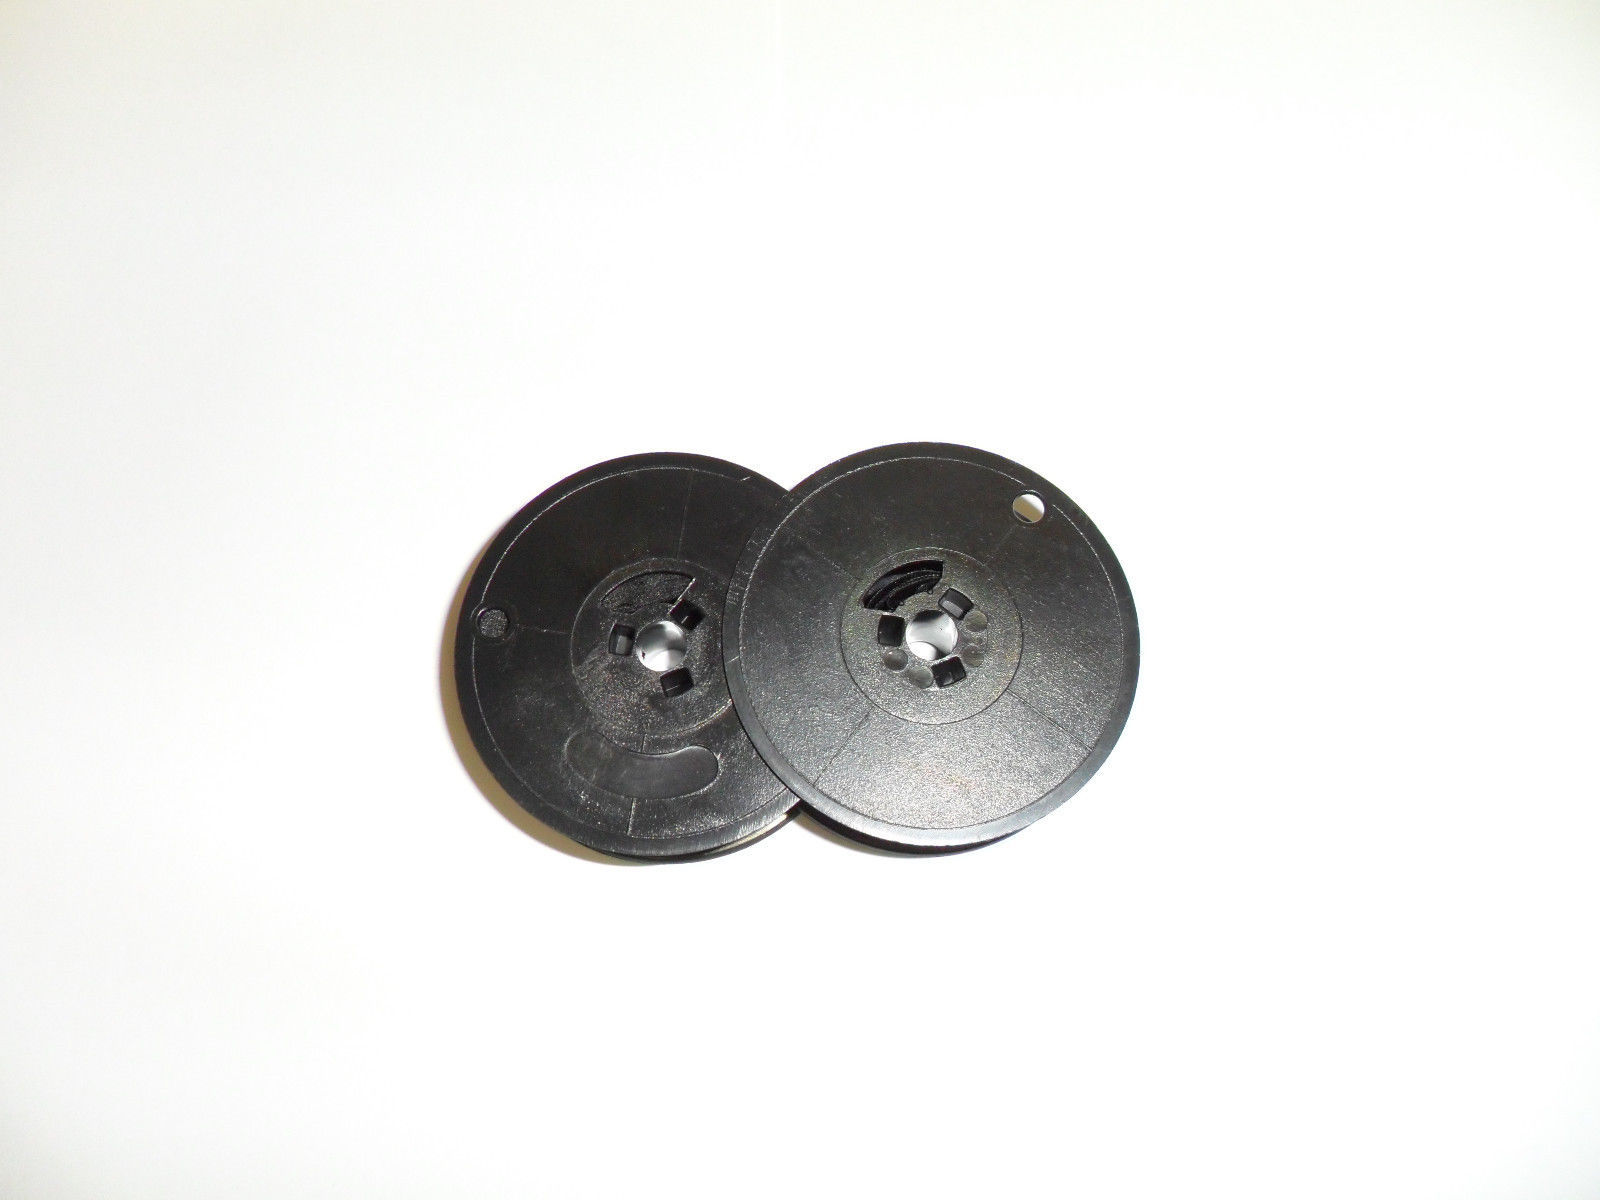 Tower Chieftain/Courier Typewriter Ribbon Olivetti 1556 Black Twin Spool